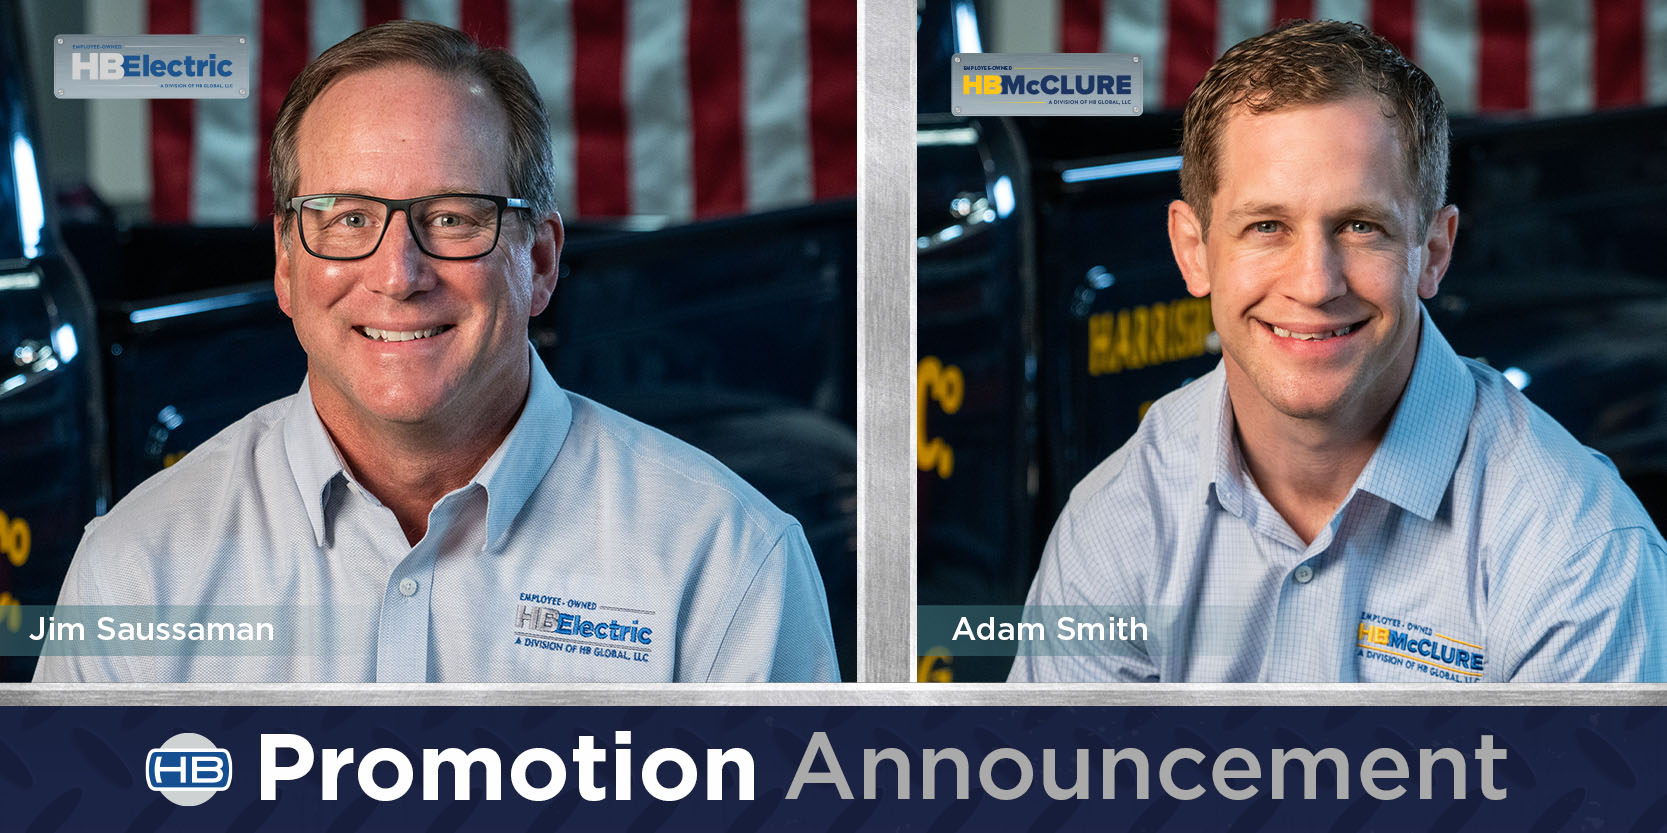 Adam Smith and Jim Saussaman HB Electric and HB McClure